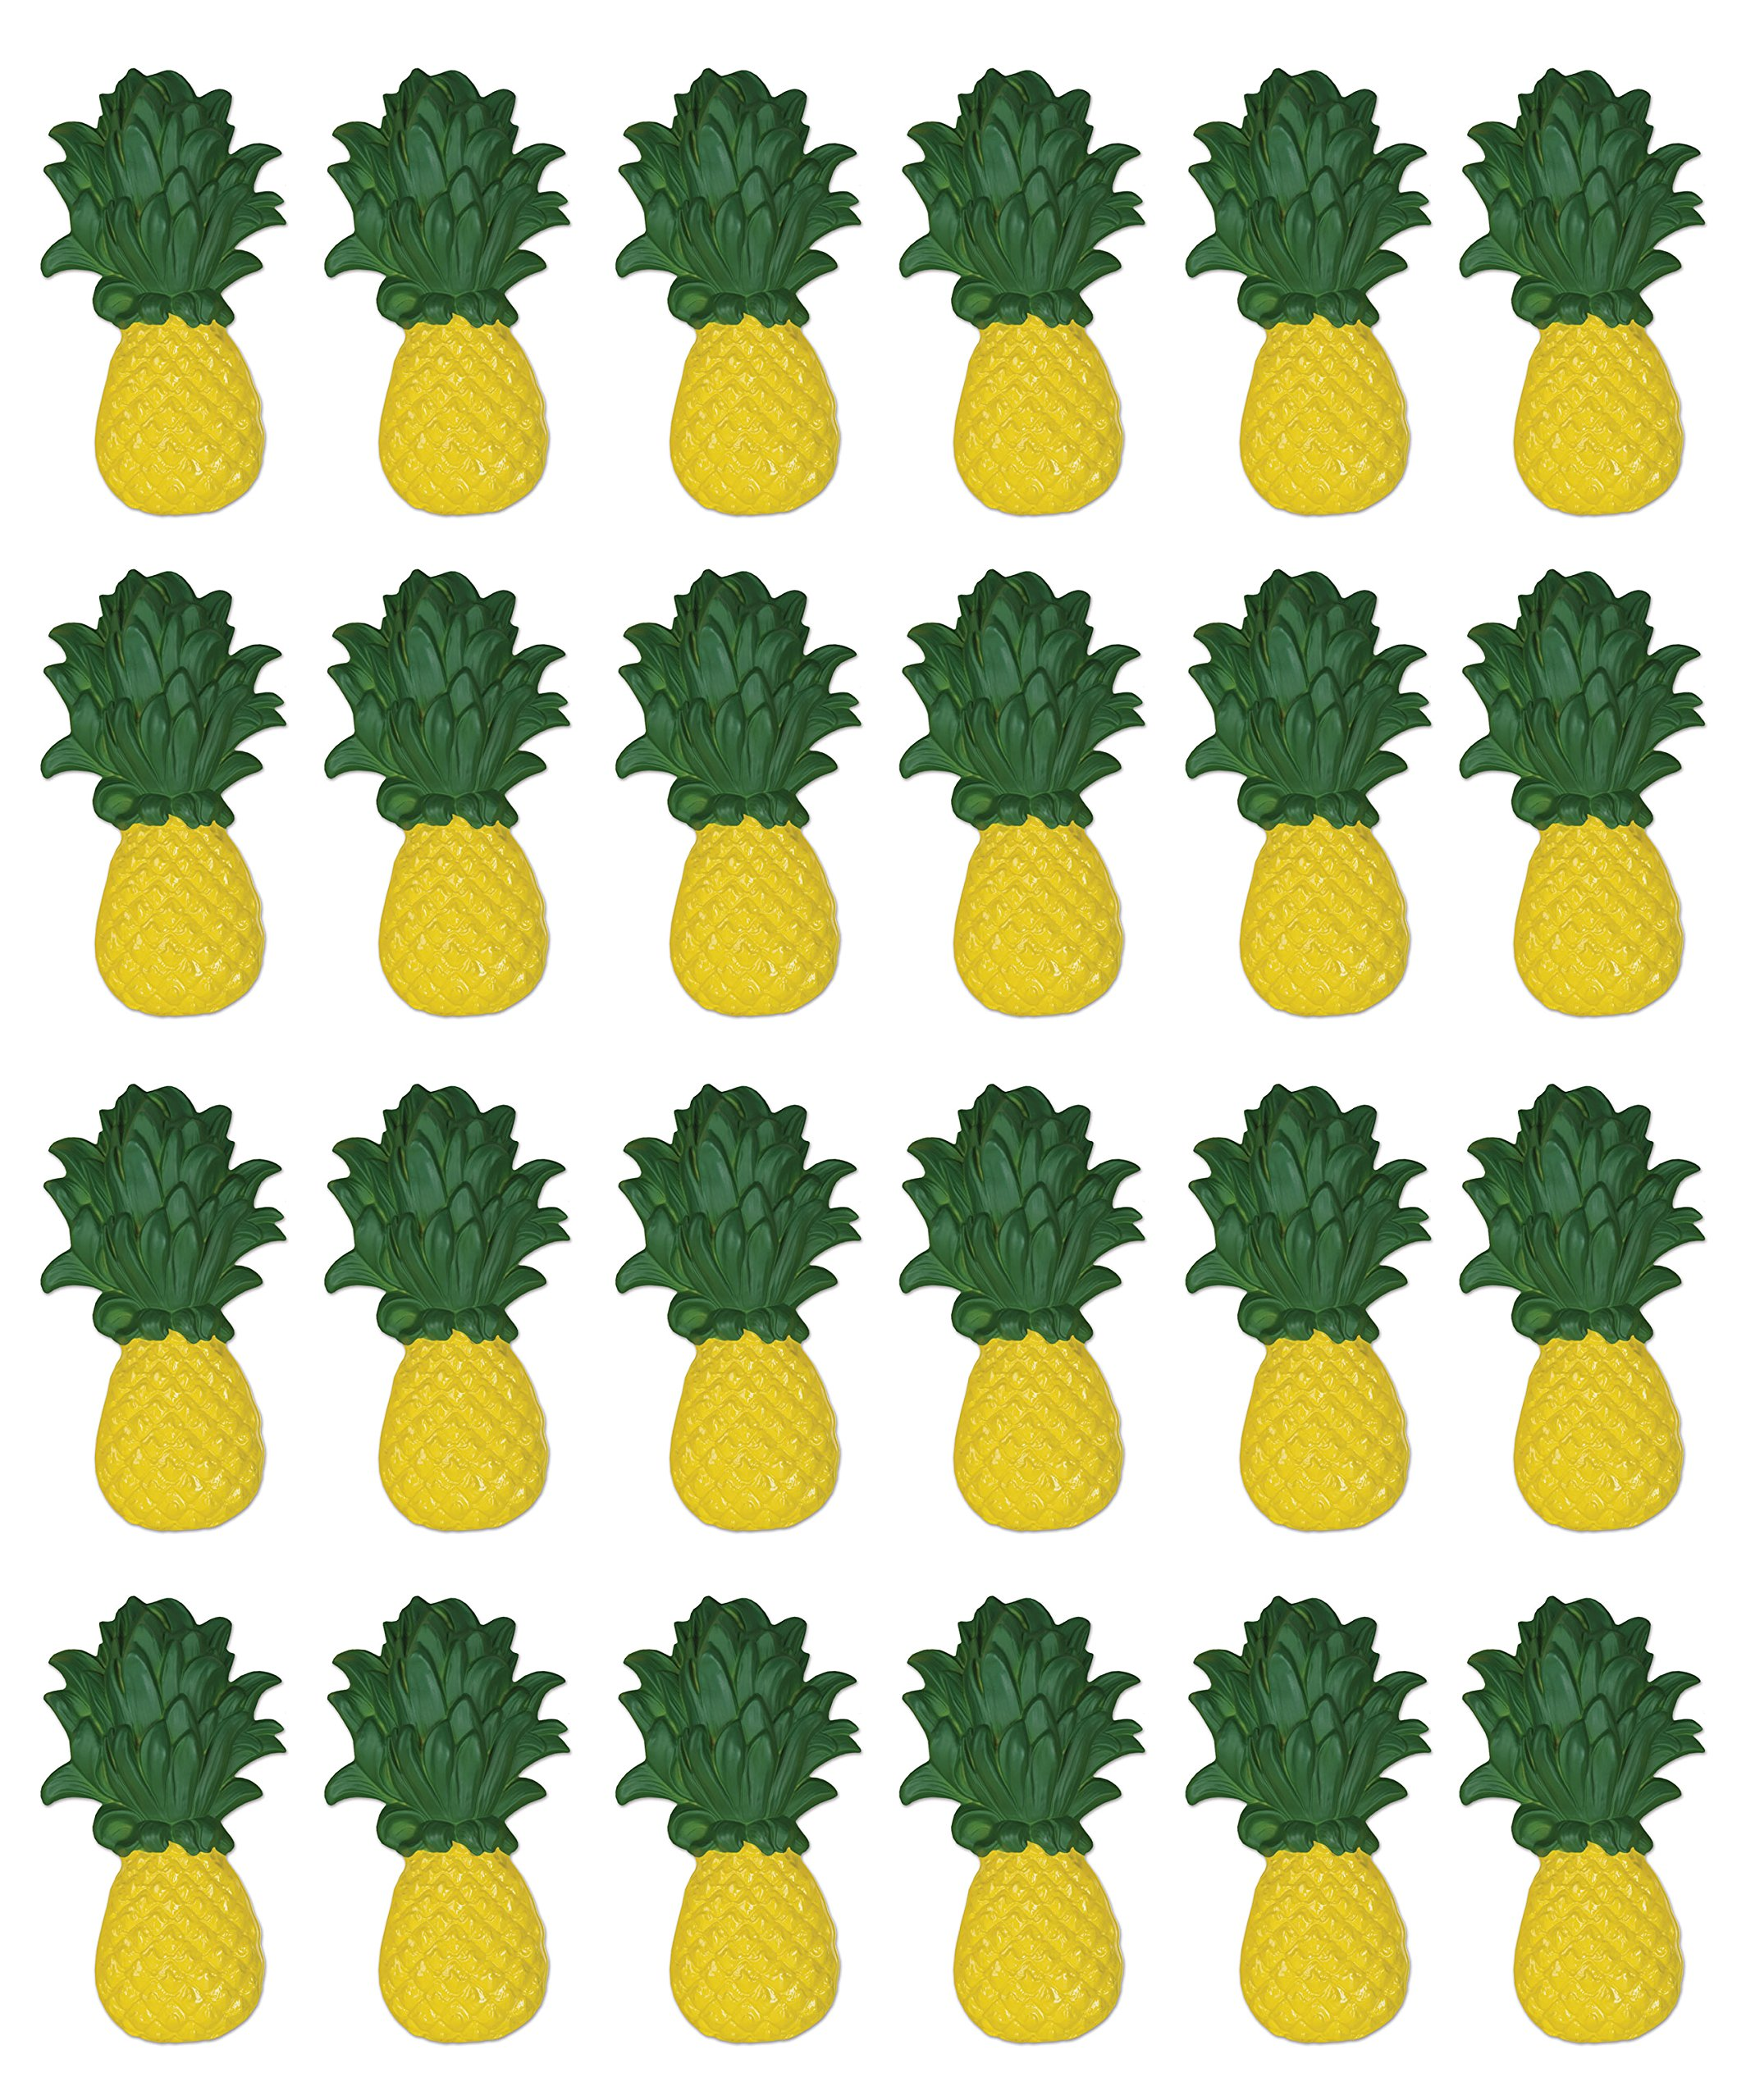 Beistle 59960, 24Piece Plastic Pineapples, 19'', Yellow/Green